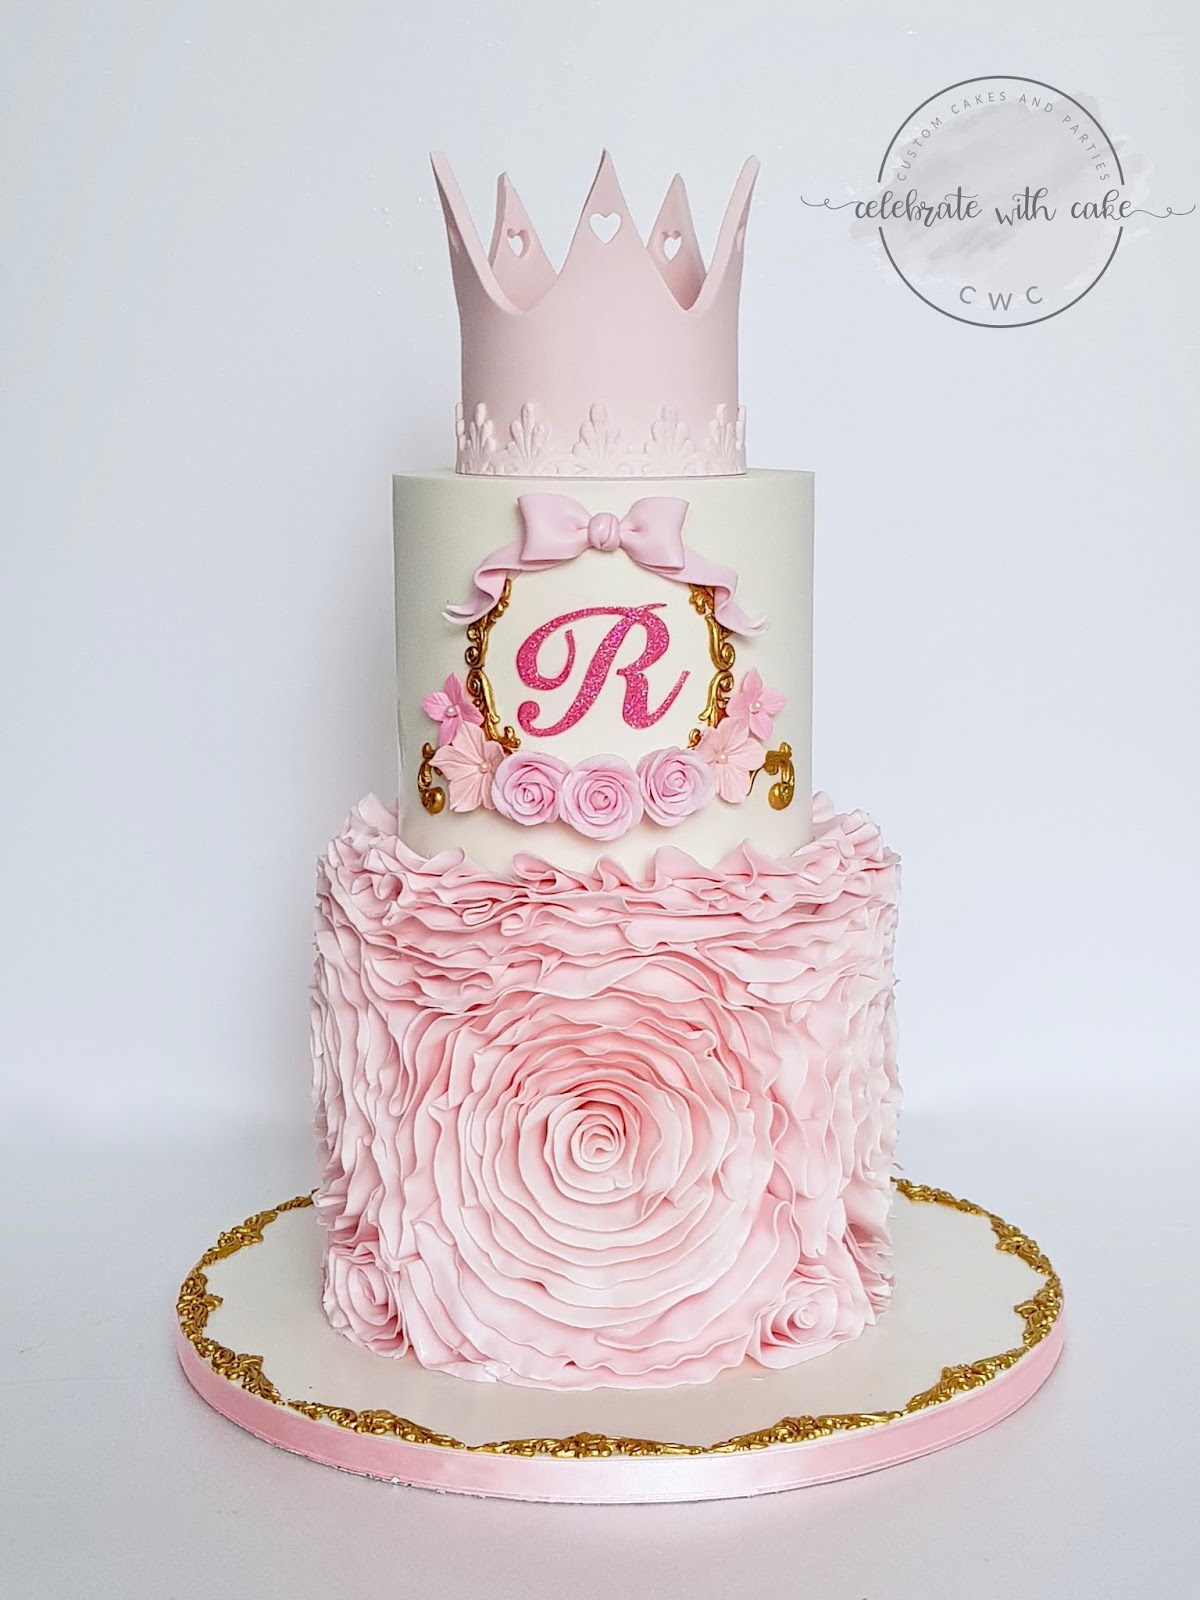 Wondrous Celebrate With Cake Princess Floral Ruffles 2 Tiers 1St Birthday Funny Birthday Cards Online Aeocydamsfinfo